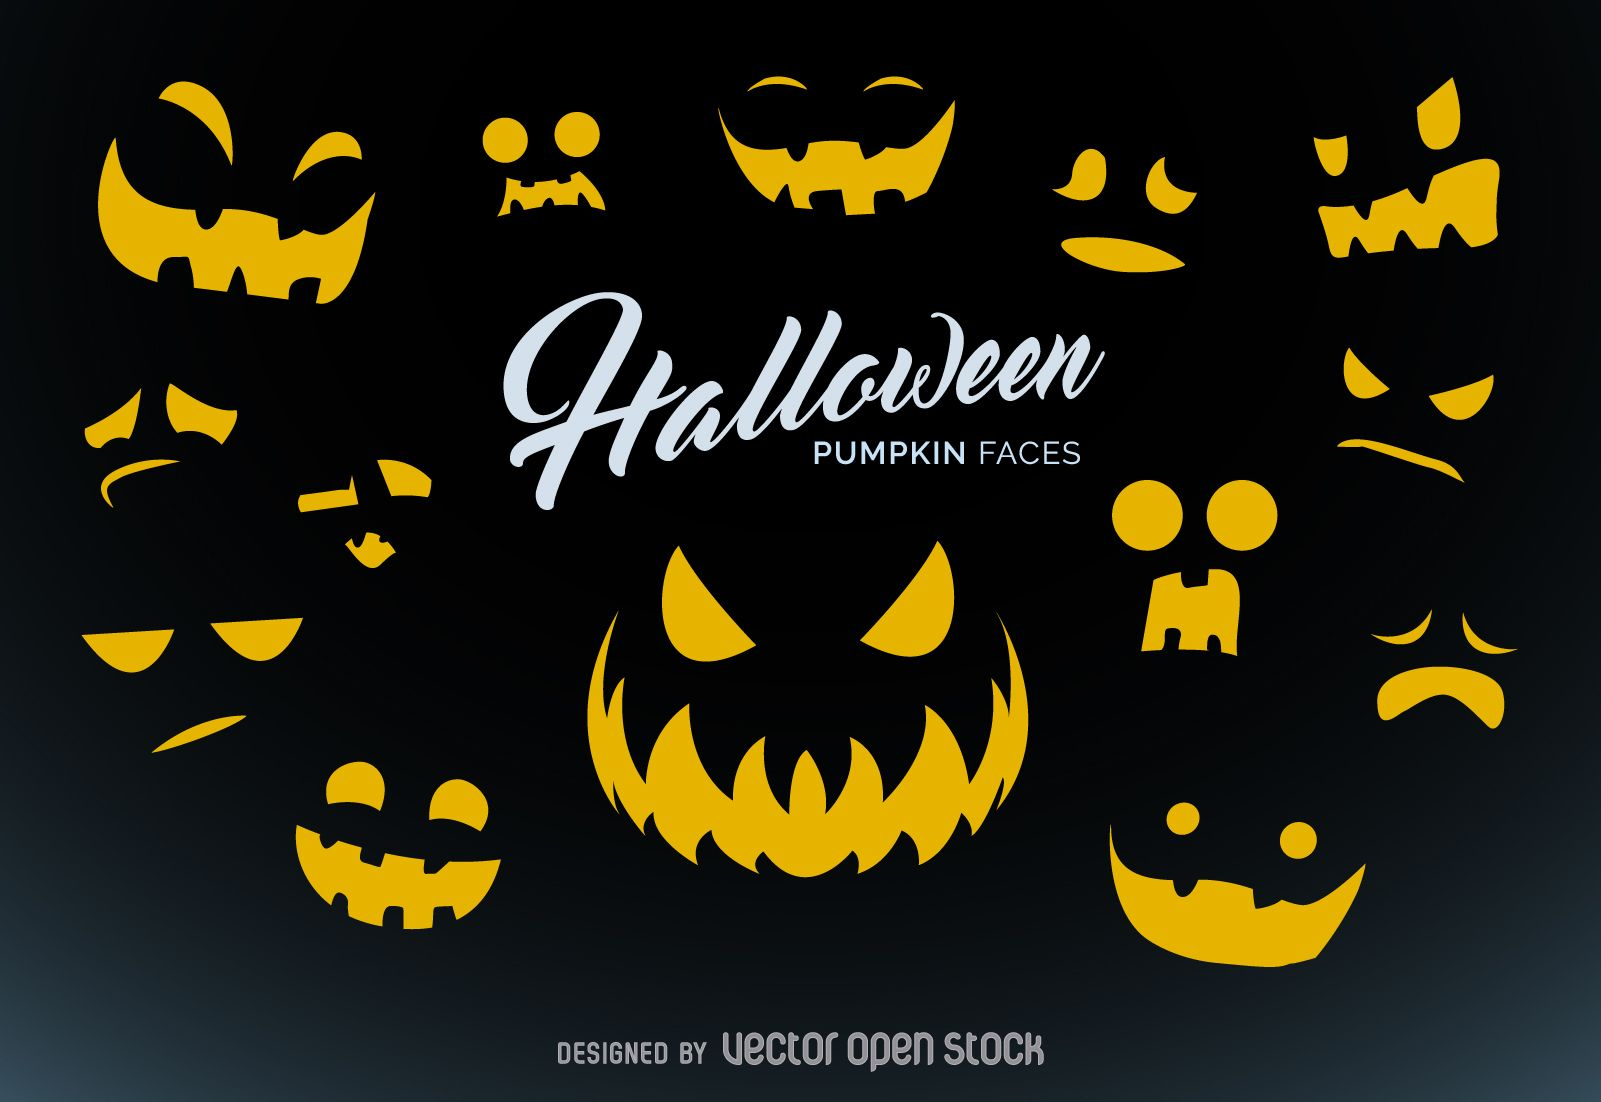 Pumpkin carving templates for Halloween. Set of spooky expressions ...